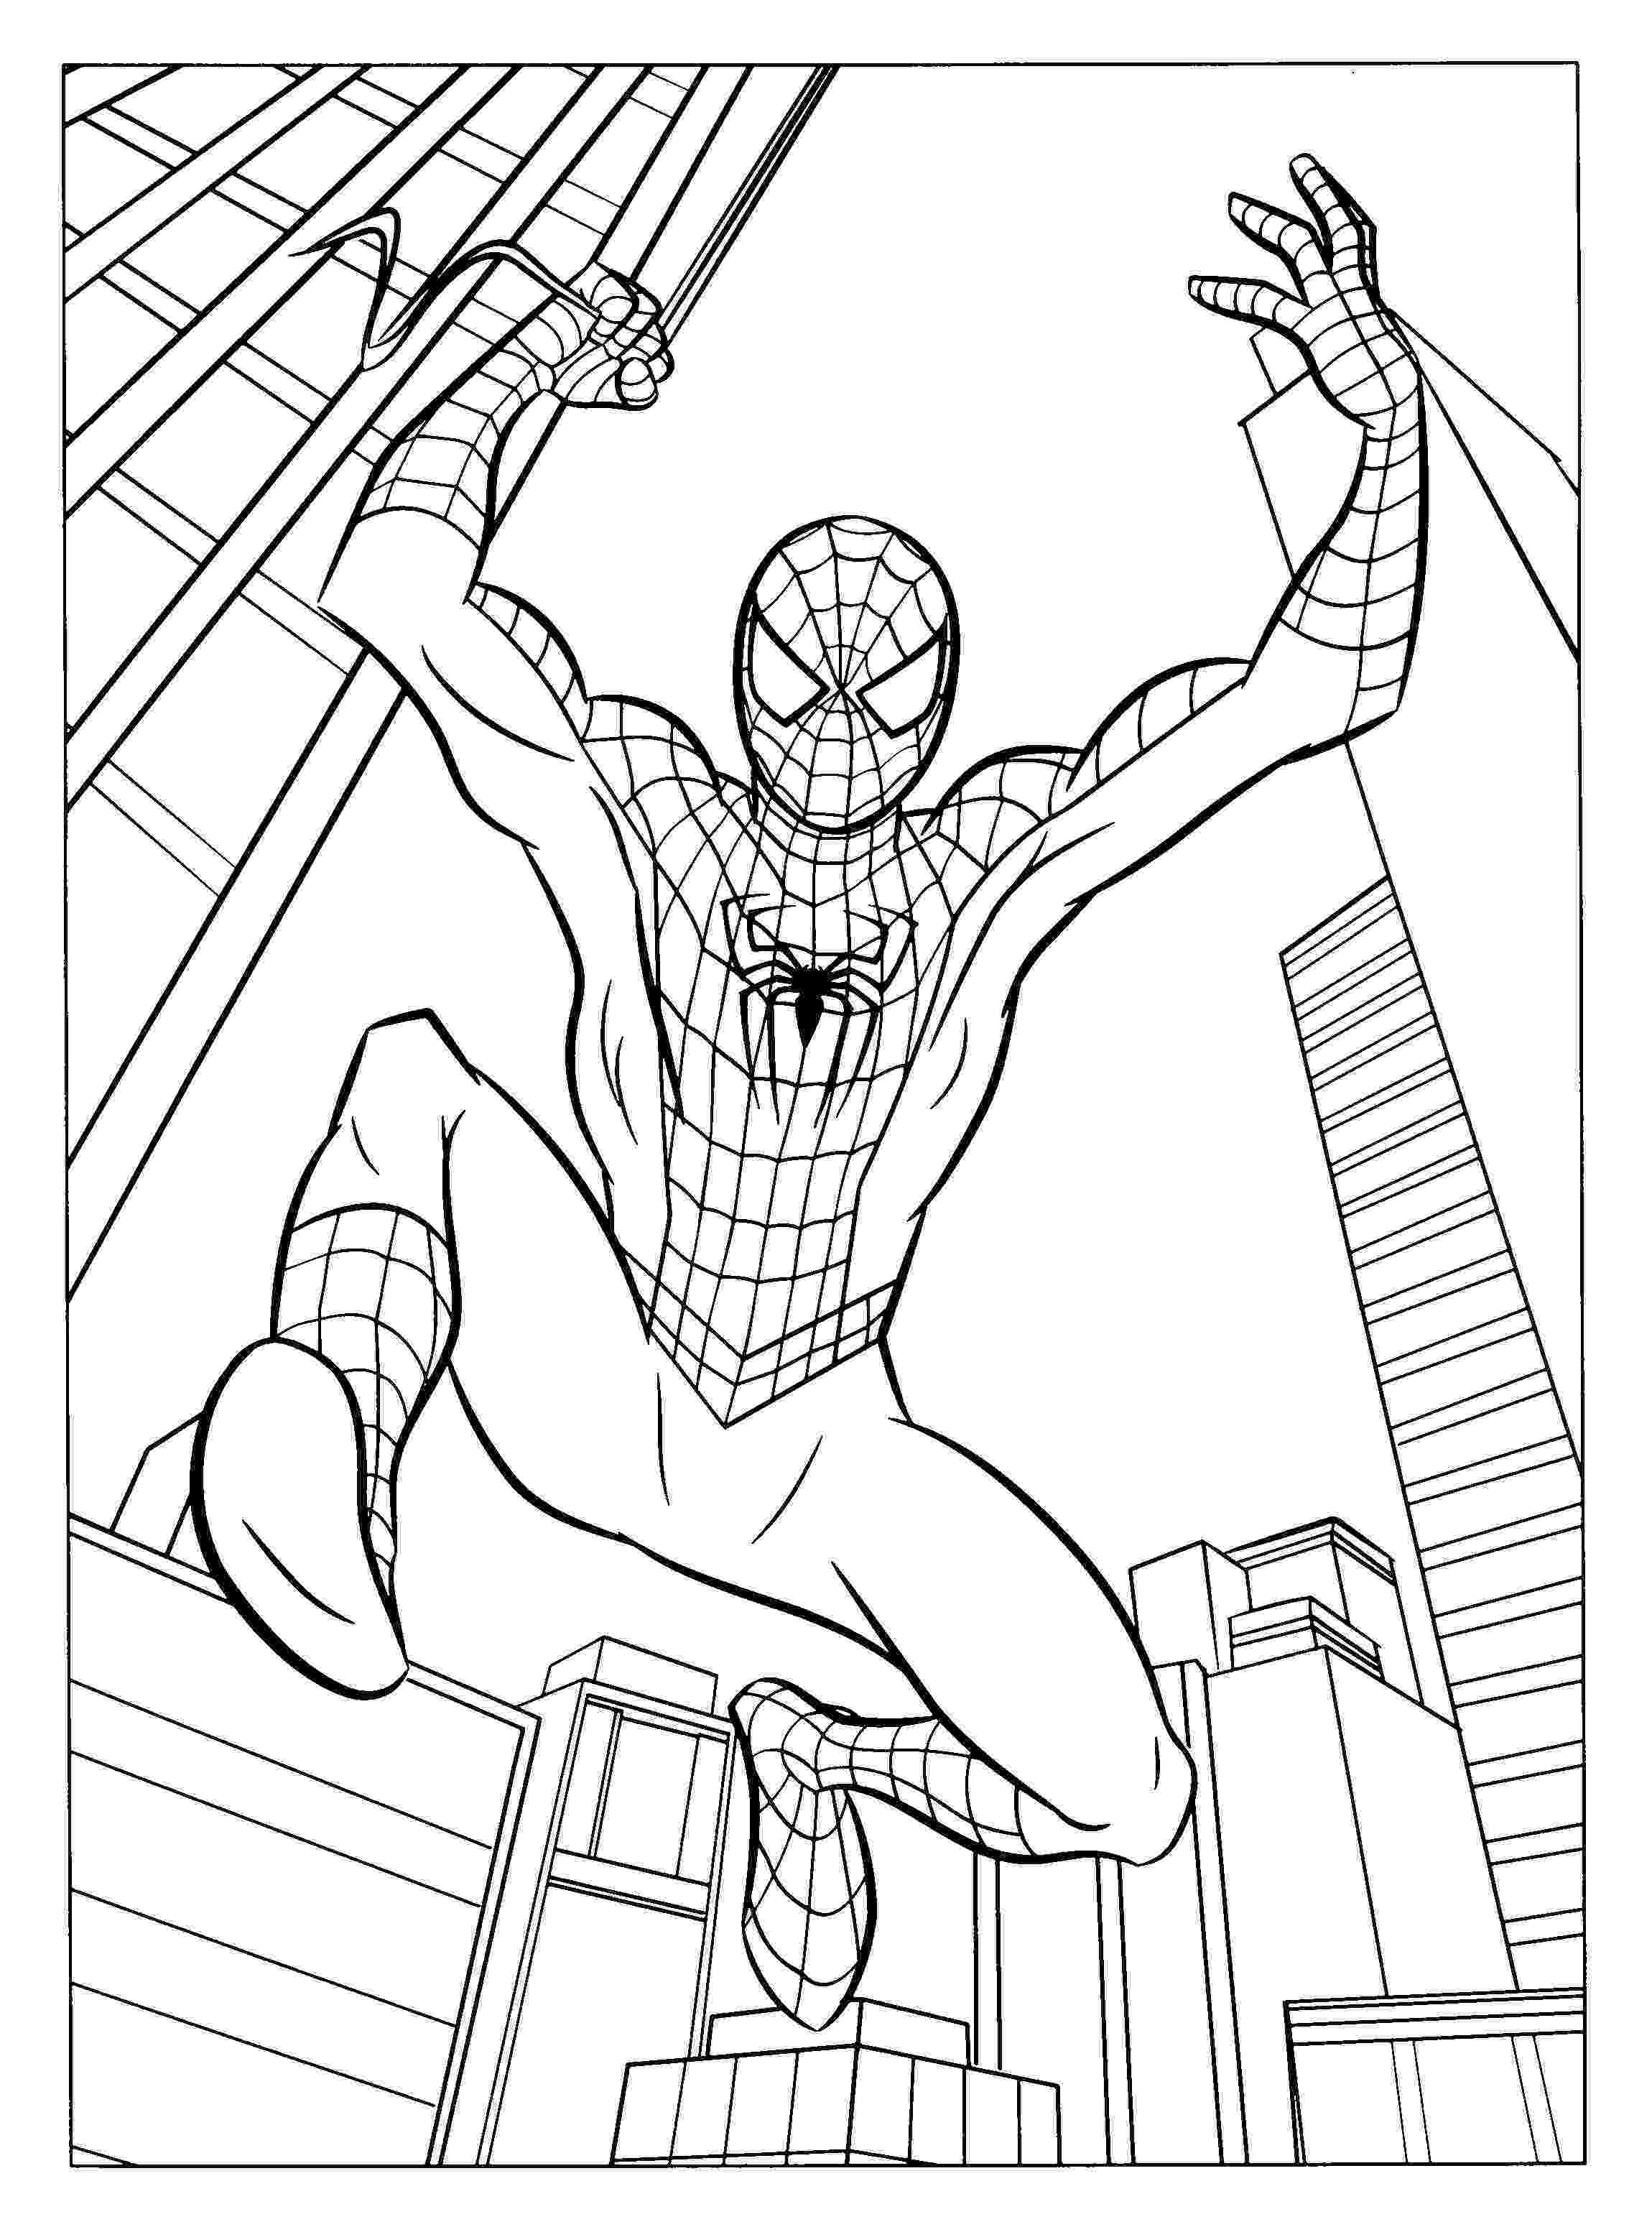 printable coloring pages for spiderman coloring pages spiderman free printable coloring pages pages spiderman printable coloring for